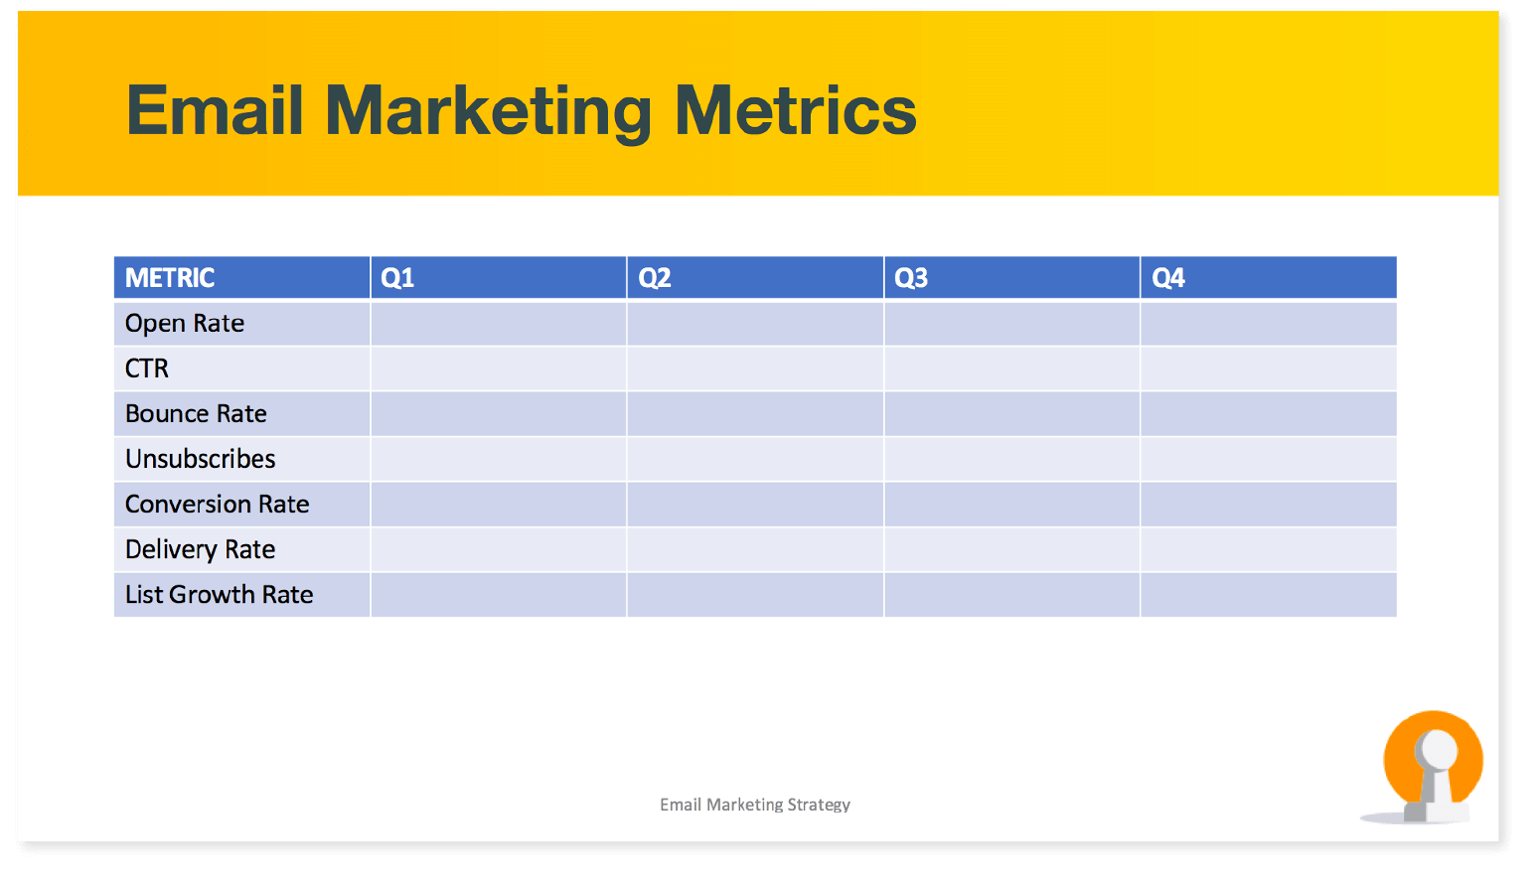 Adding metrics to the strategy template